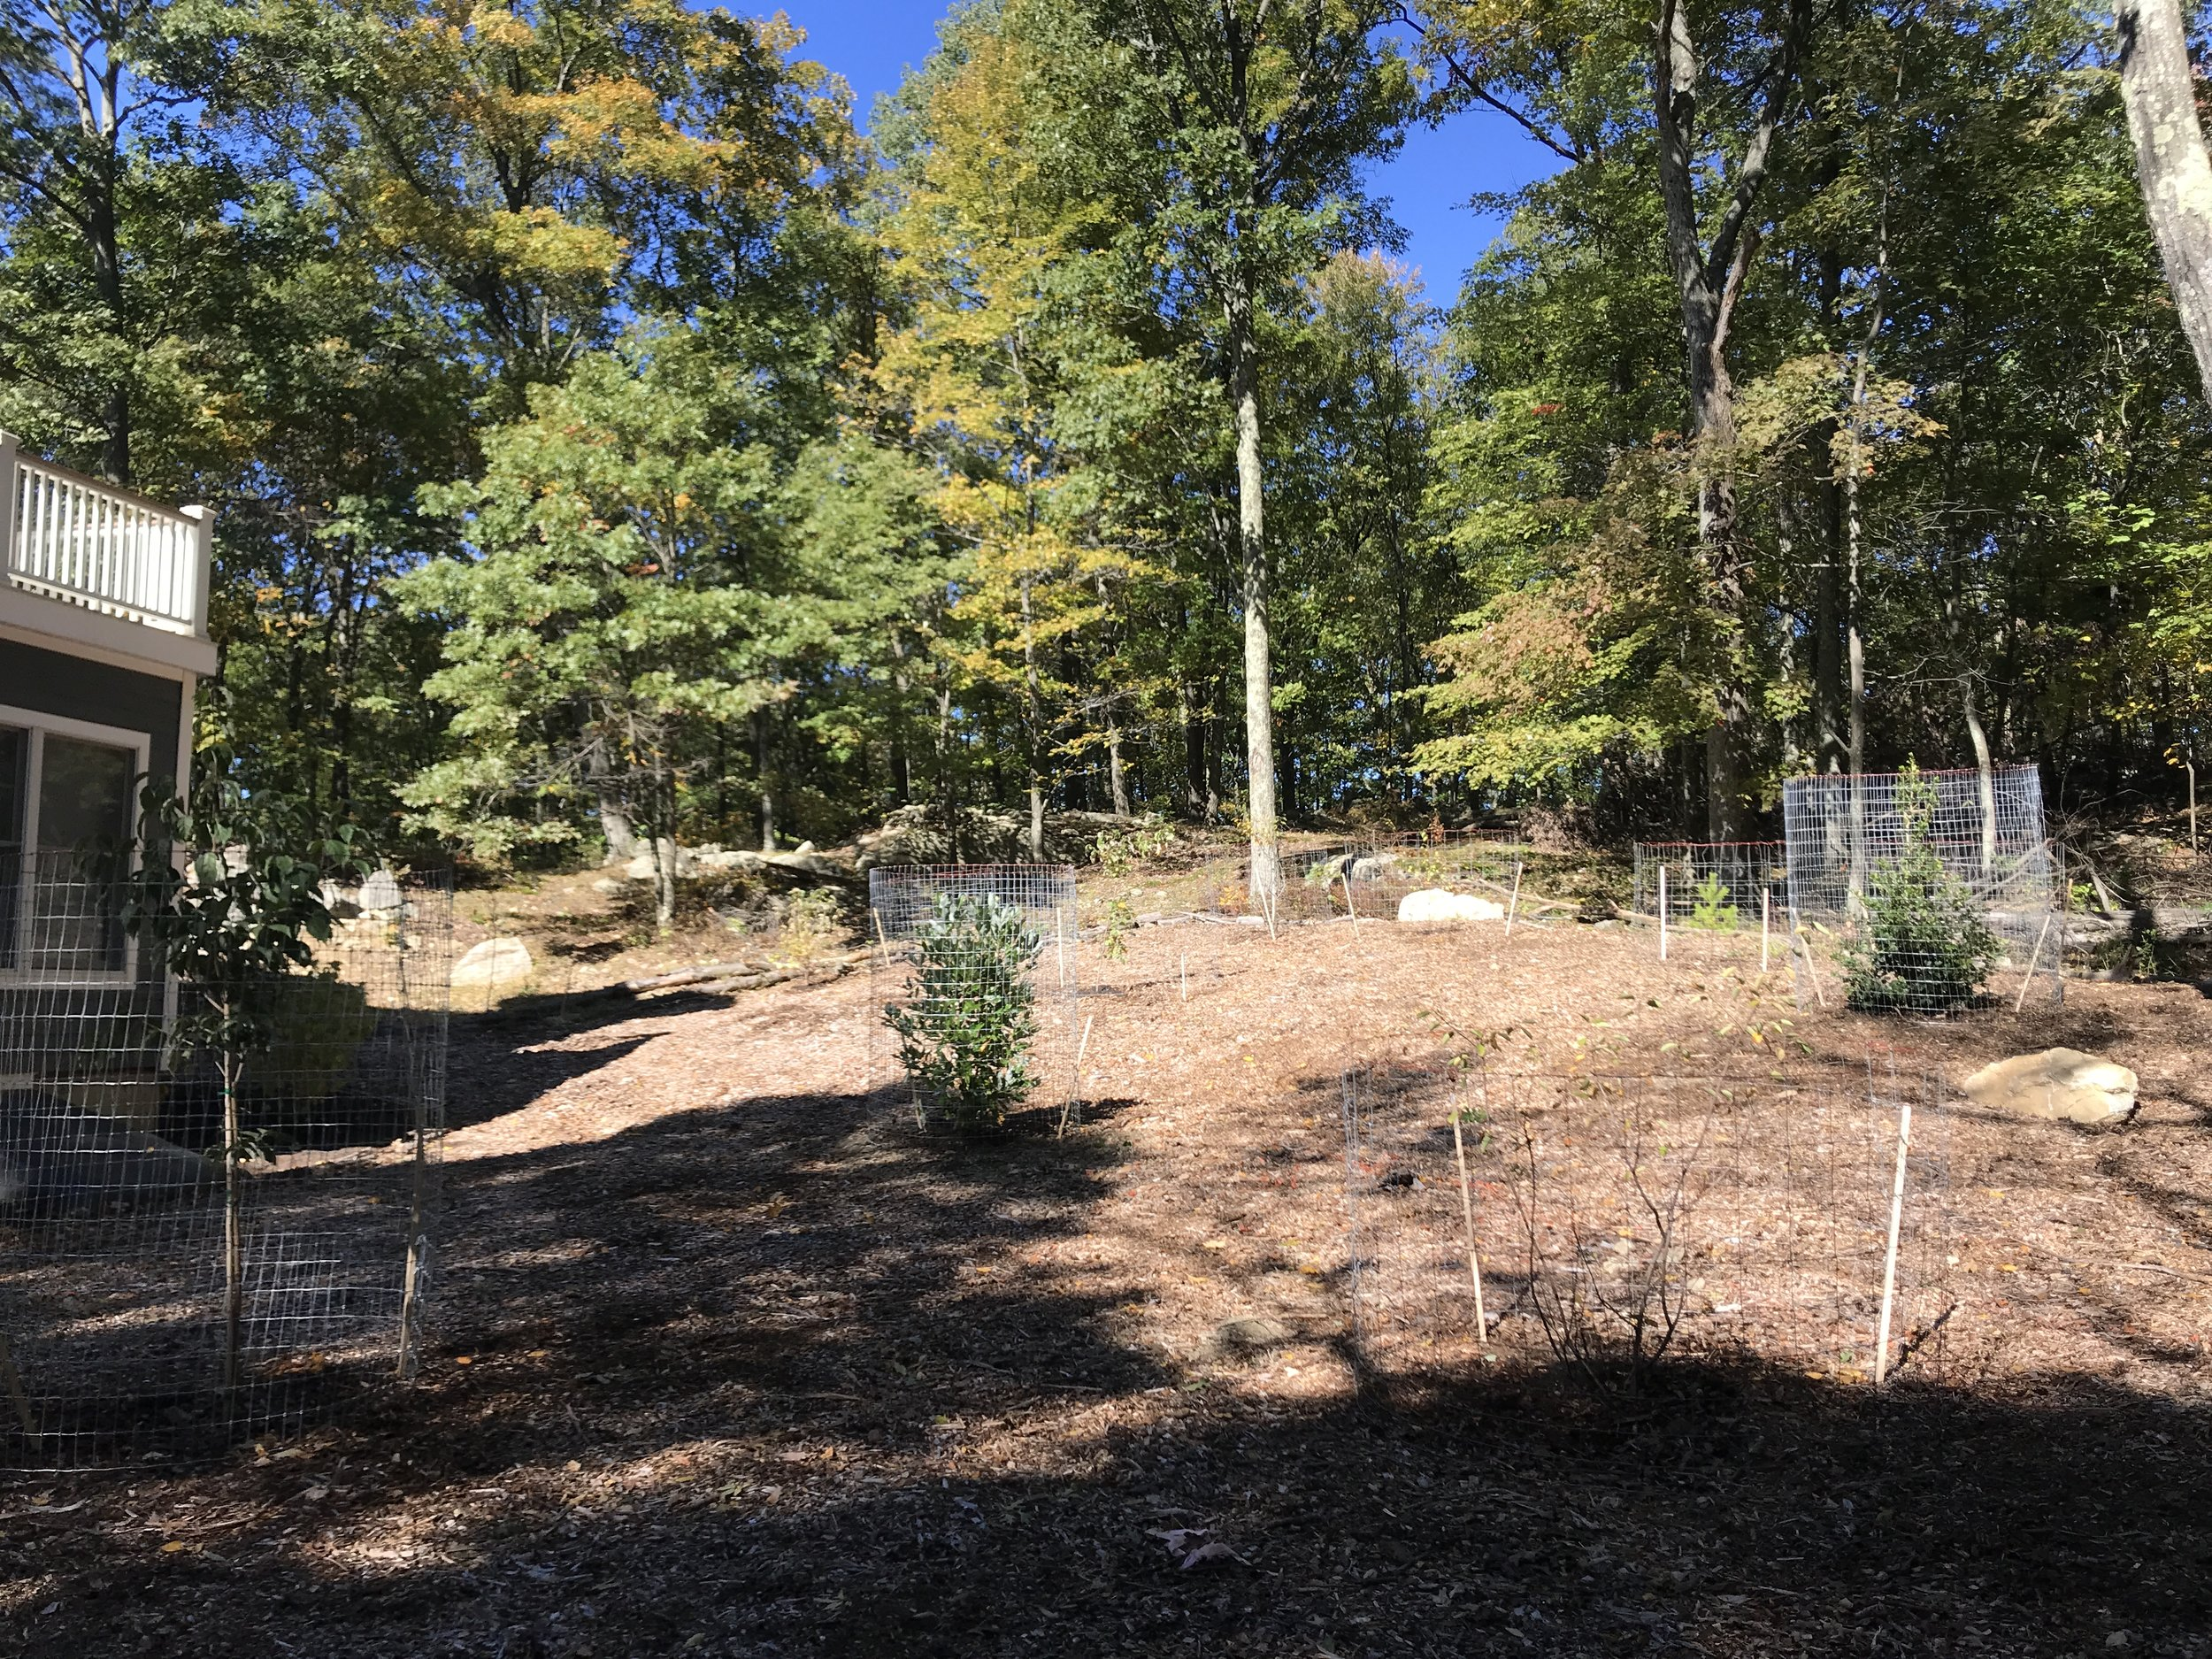 Native trees added to the perennial garden. The temporary fencing protects from deer browse as the trees establish and grow.